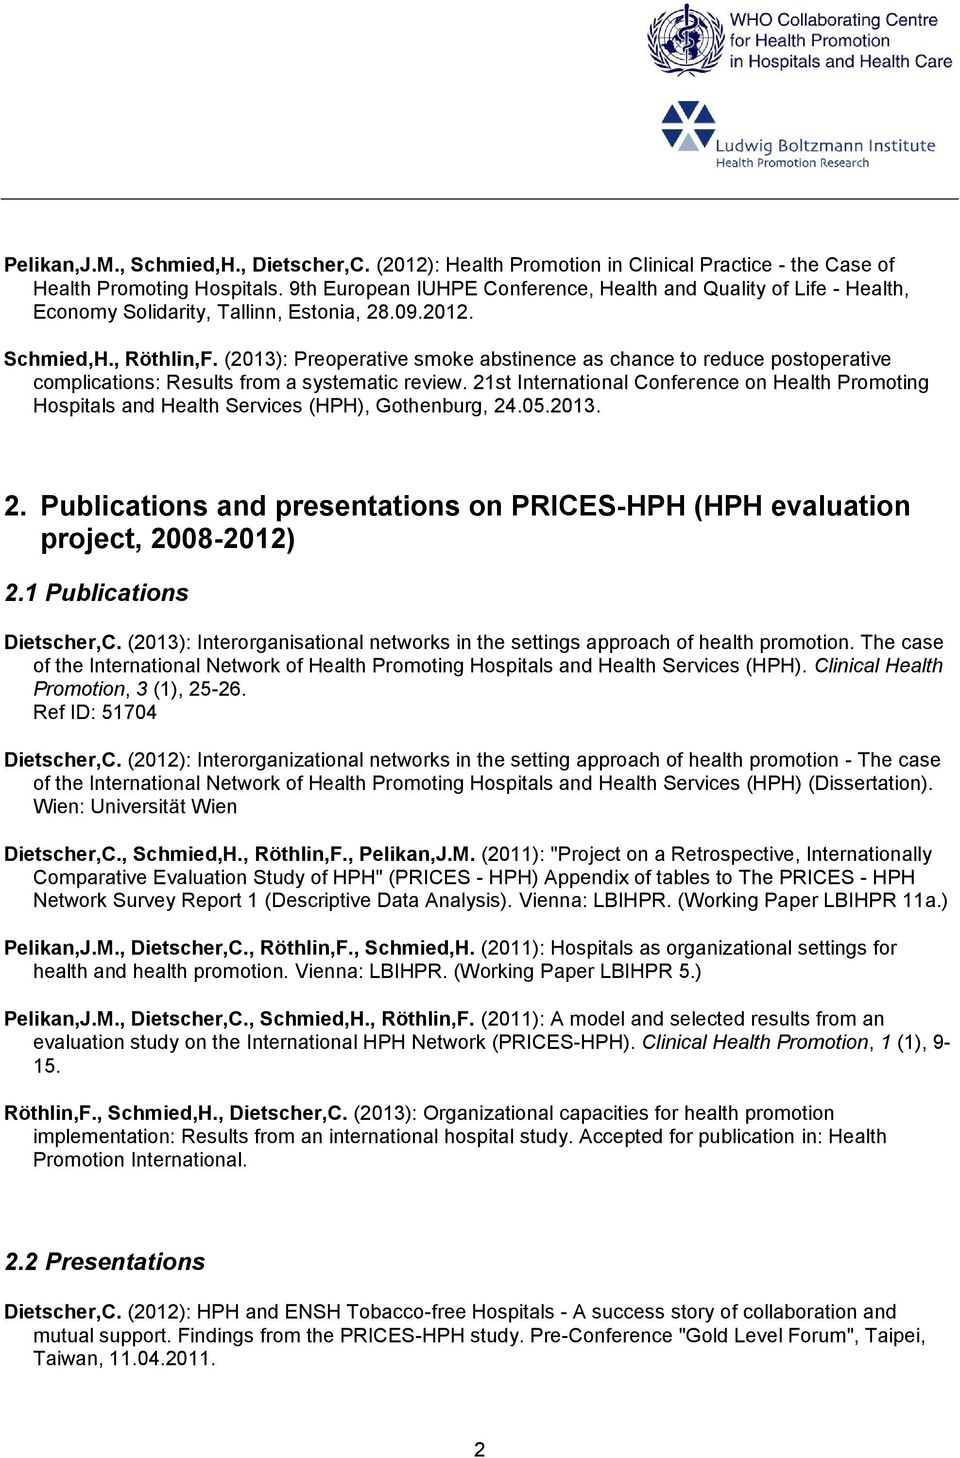 (2013): Preoperative smoke abstinence as chance to reduce postoperative complications: Results from a systematic review.